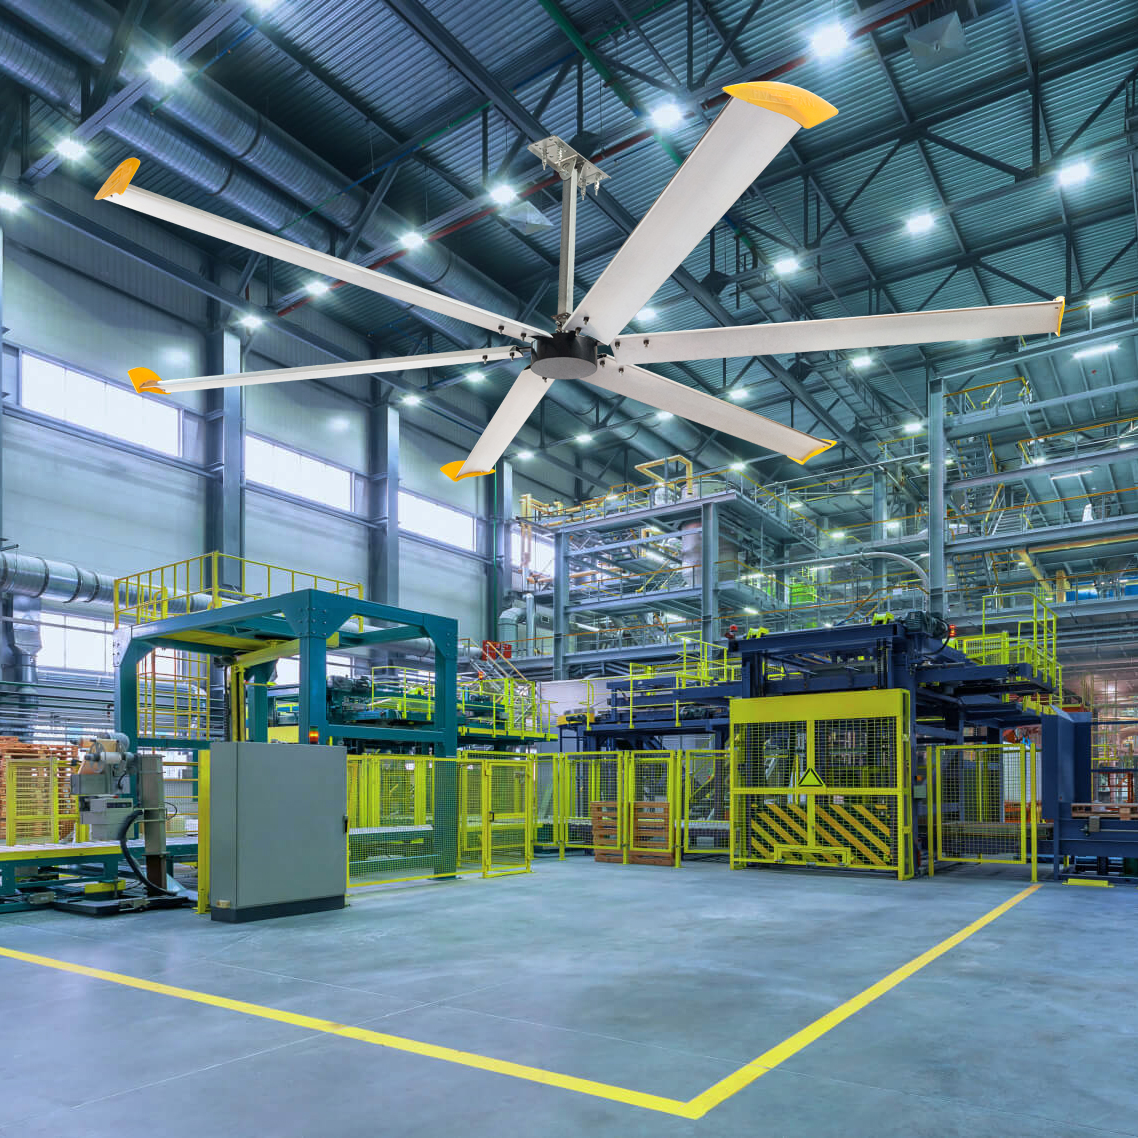 10ft HVLS ceiling fan supplier large commercial & industrial Air cooling fans with DC motor (UNI-299) Featured Image